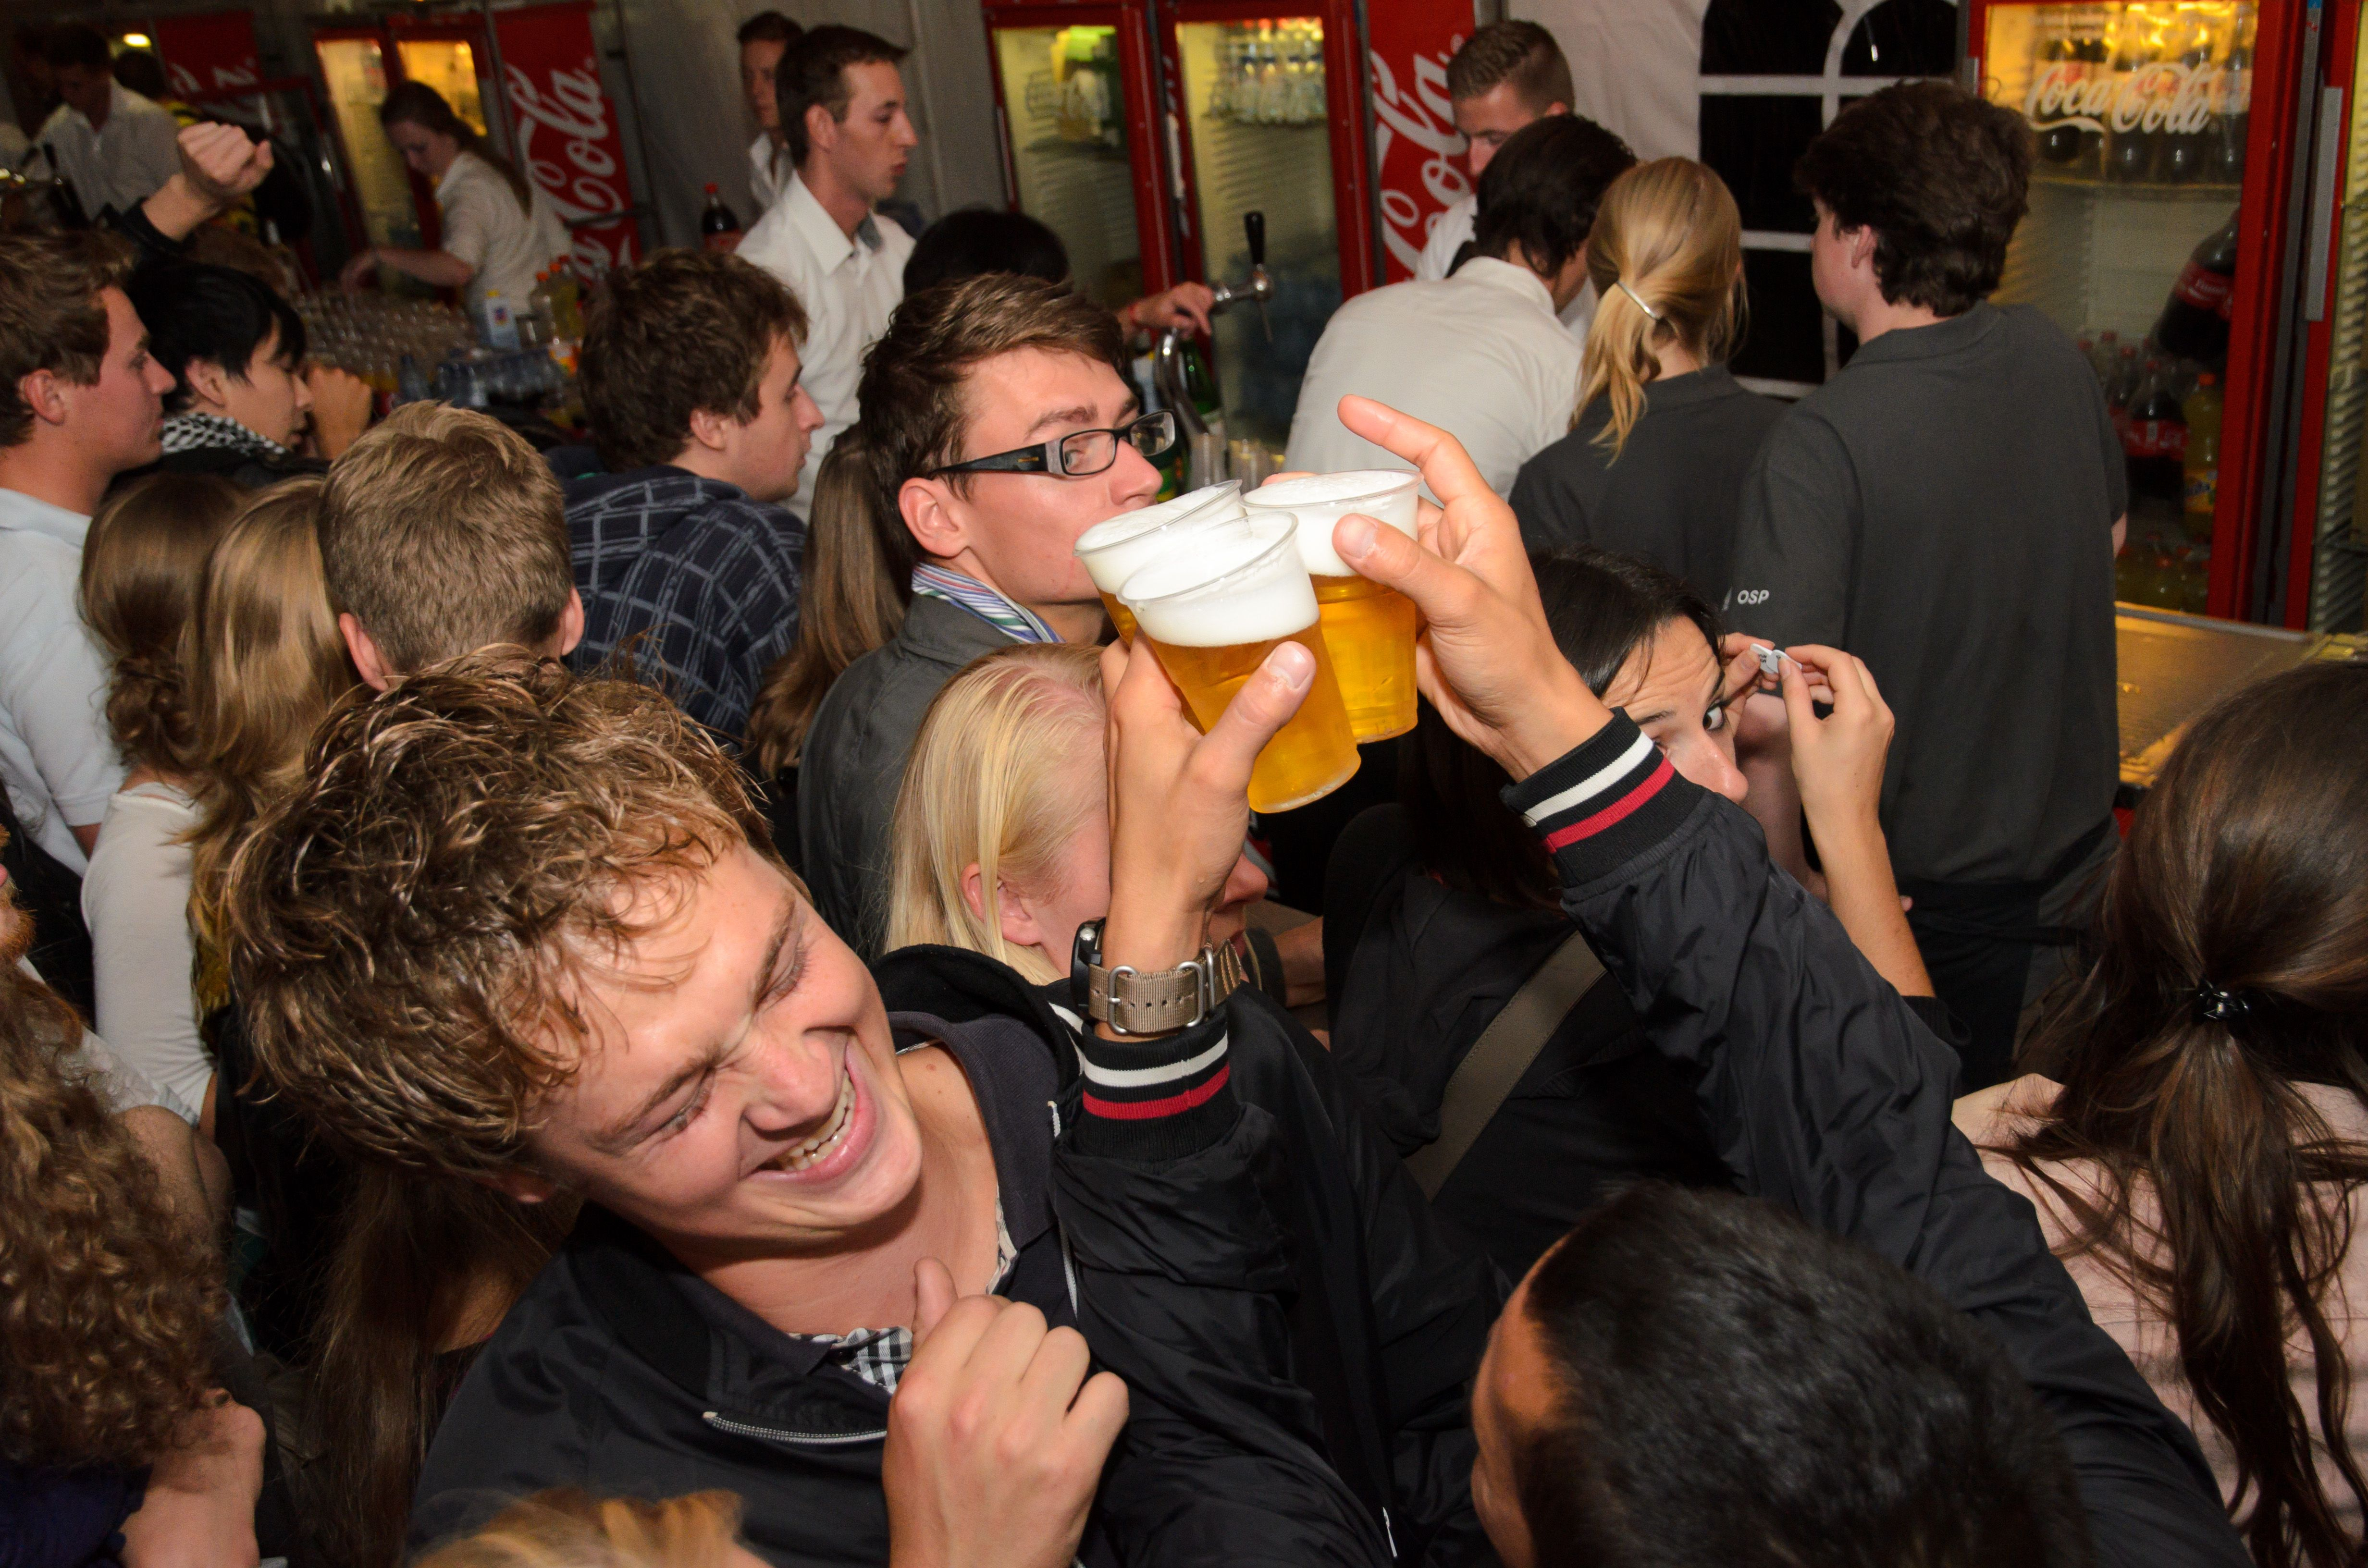 Cheers at Opening Orion Student Party in Wageningen, #openingorion